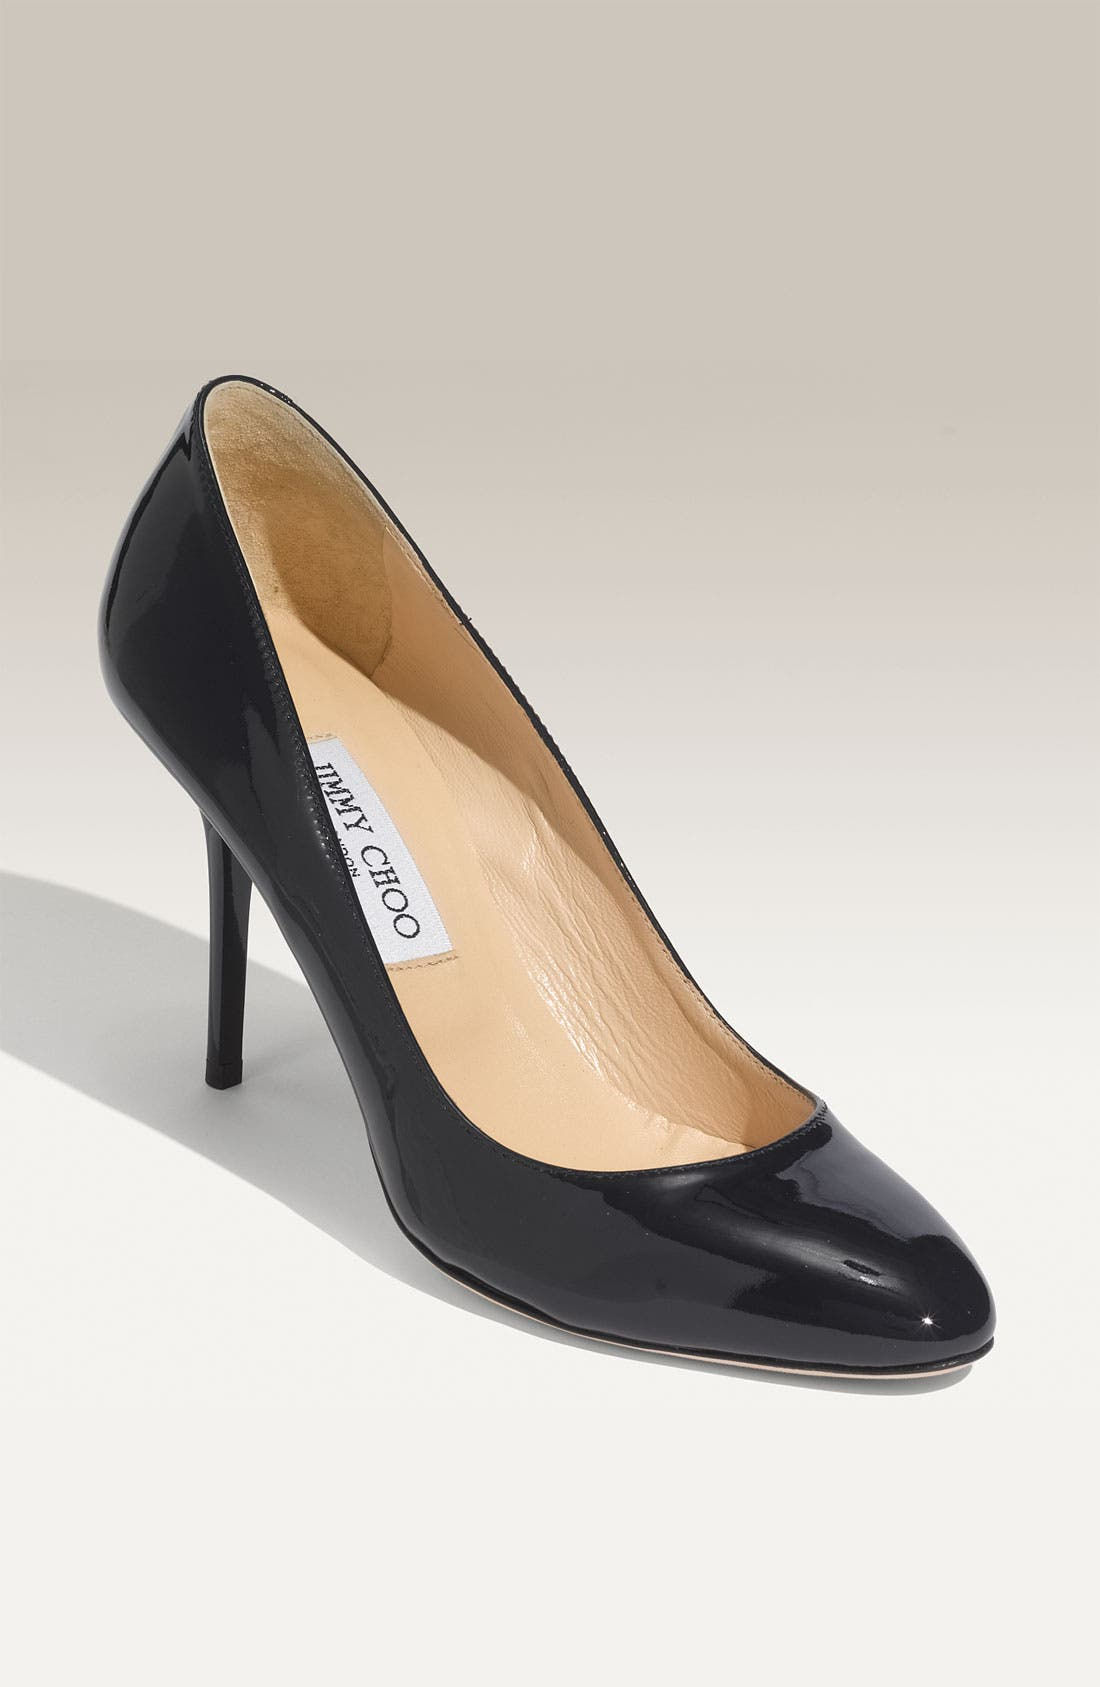 Main Image - Jimmy Choo 'Gilbert' Pump